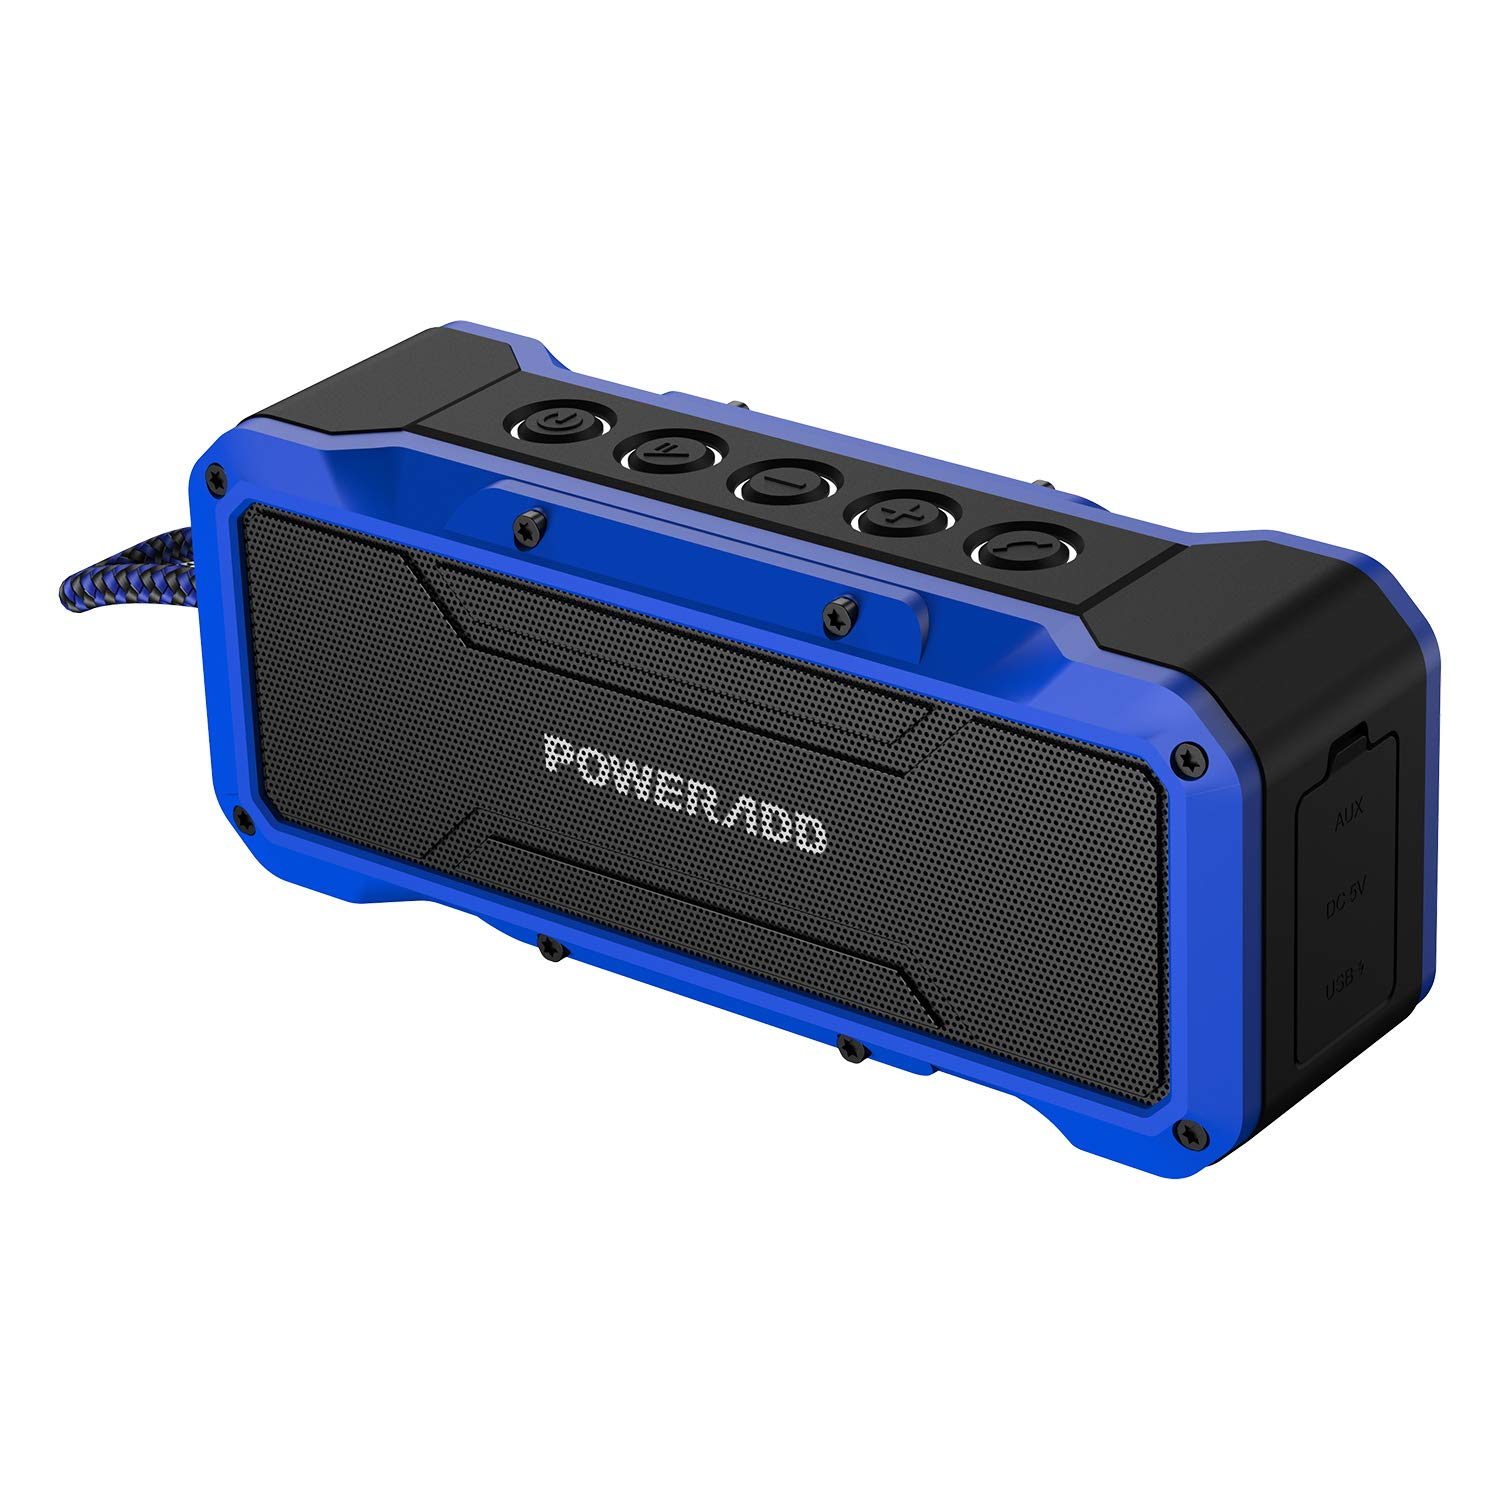 Enceinte Bluetooth Portable 36W Waterproof couleur bleu